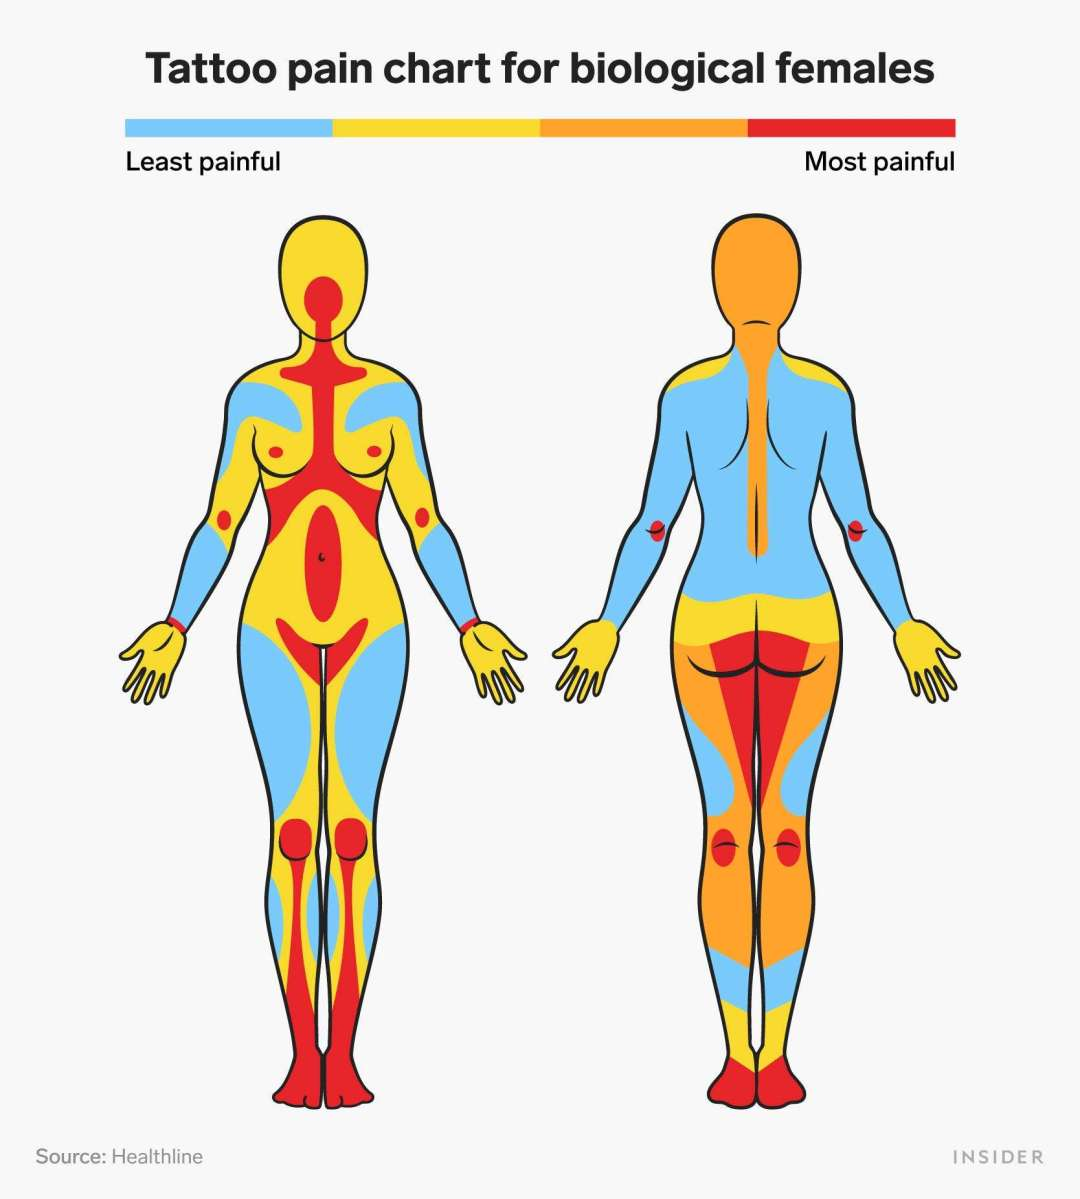 Thinking of a tattoo? Here are the most and least painful spots to get inked